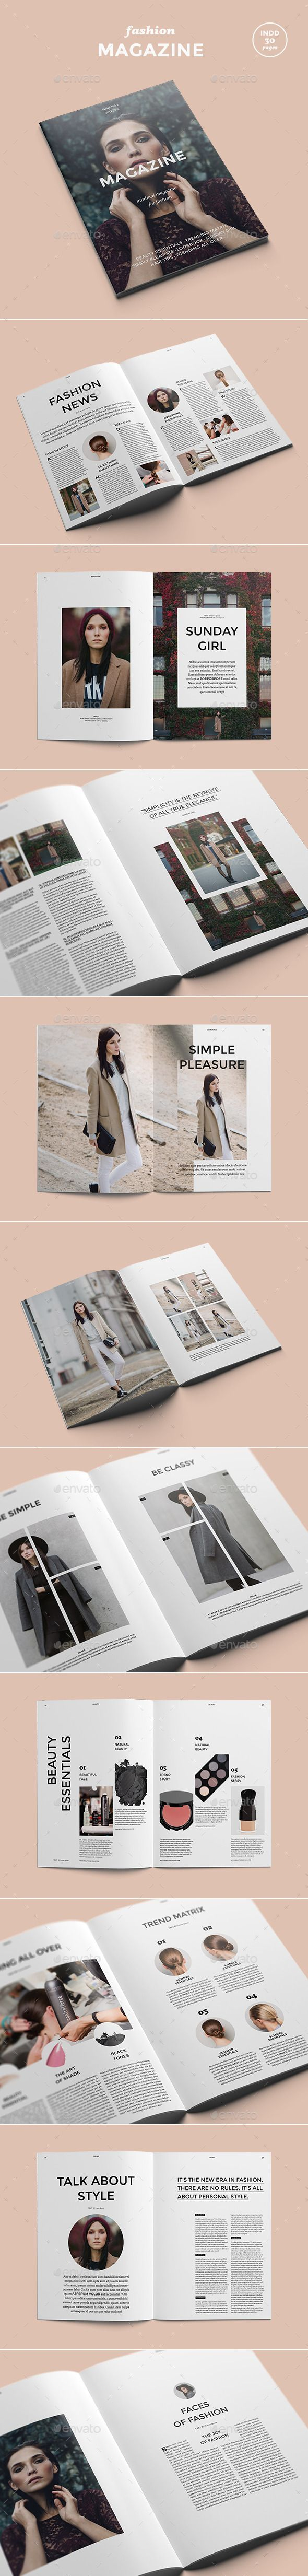 Fashion Magazine - Magazines Print Templates: